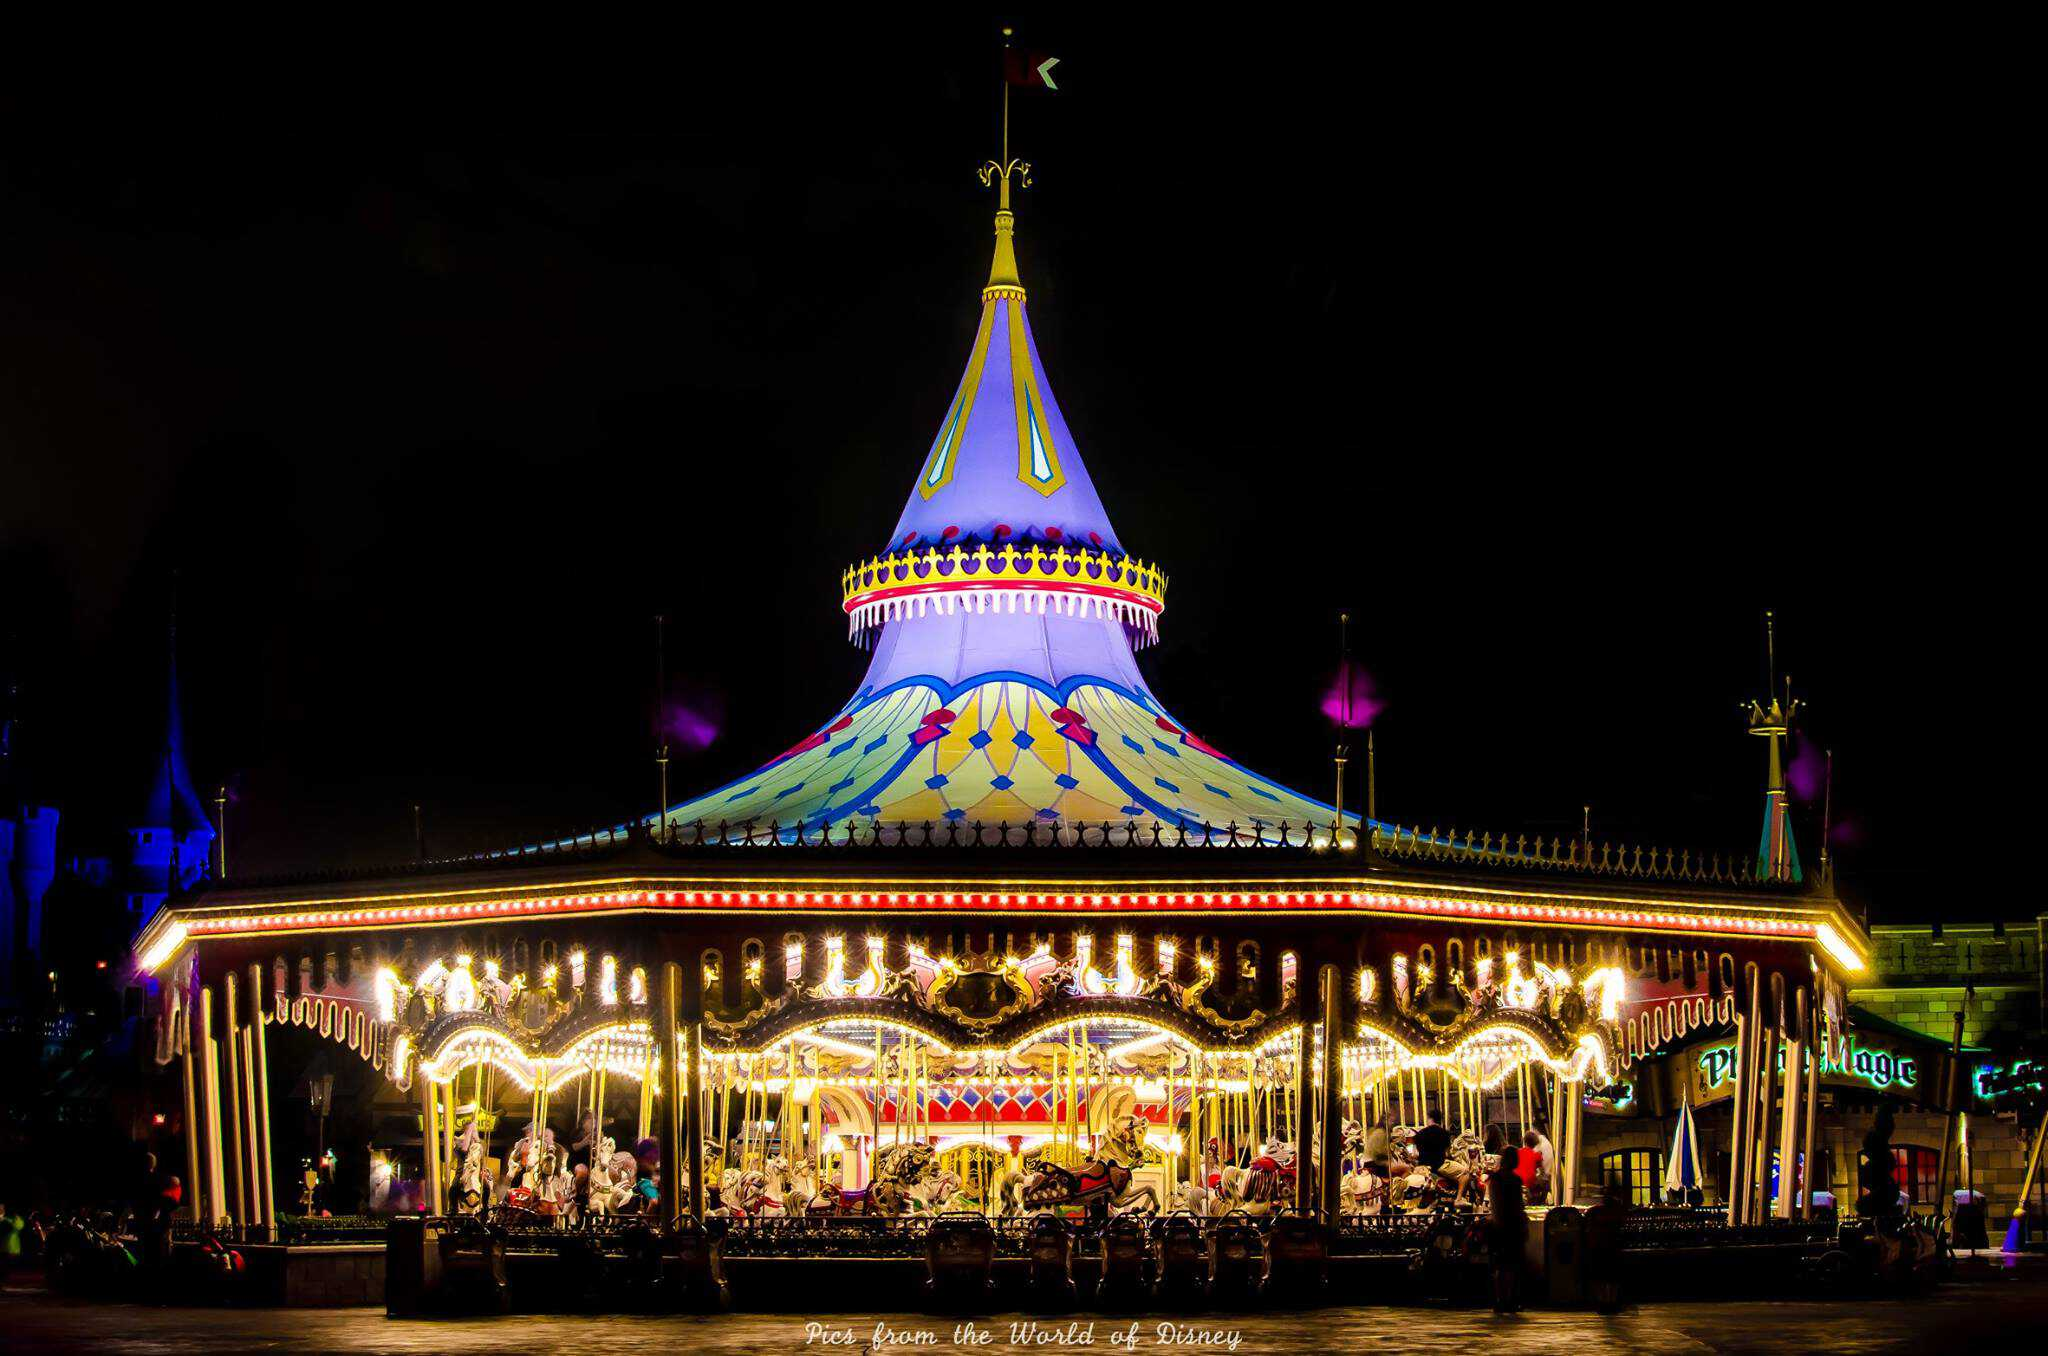 The Best Tips for Walt Disney World with Toddlers